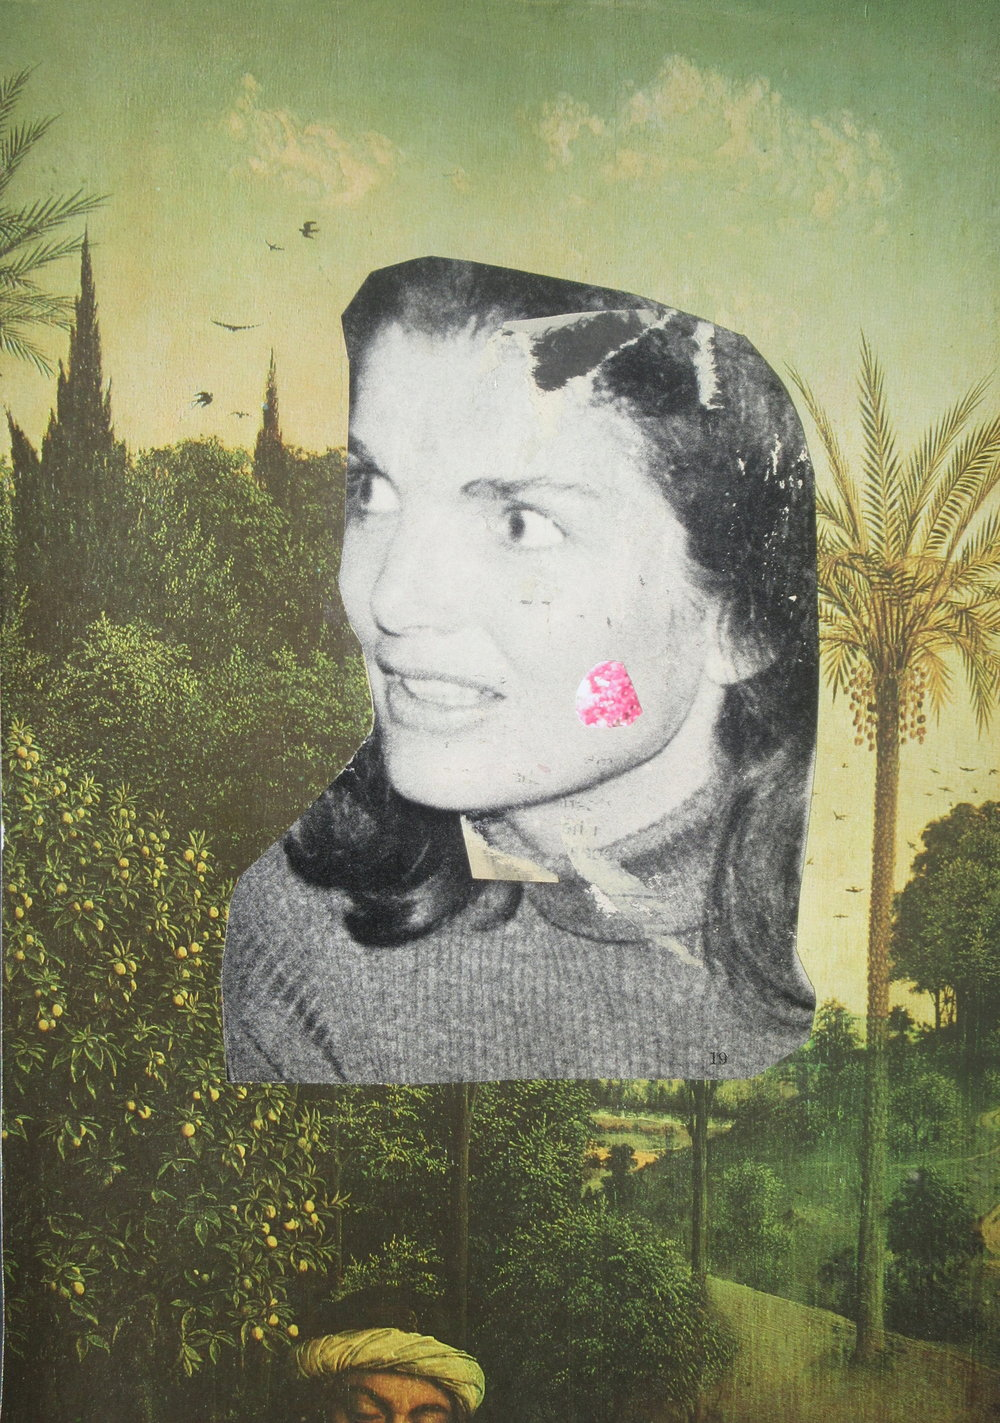 Guy Maddin,  Untitled (Jackie) , 2016. Collage on paper, 10 x 8 inches